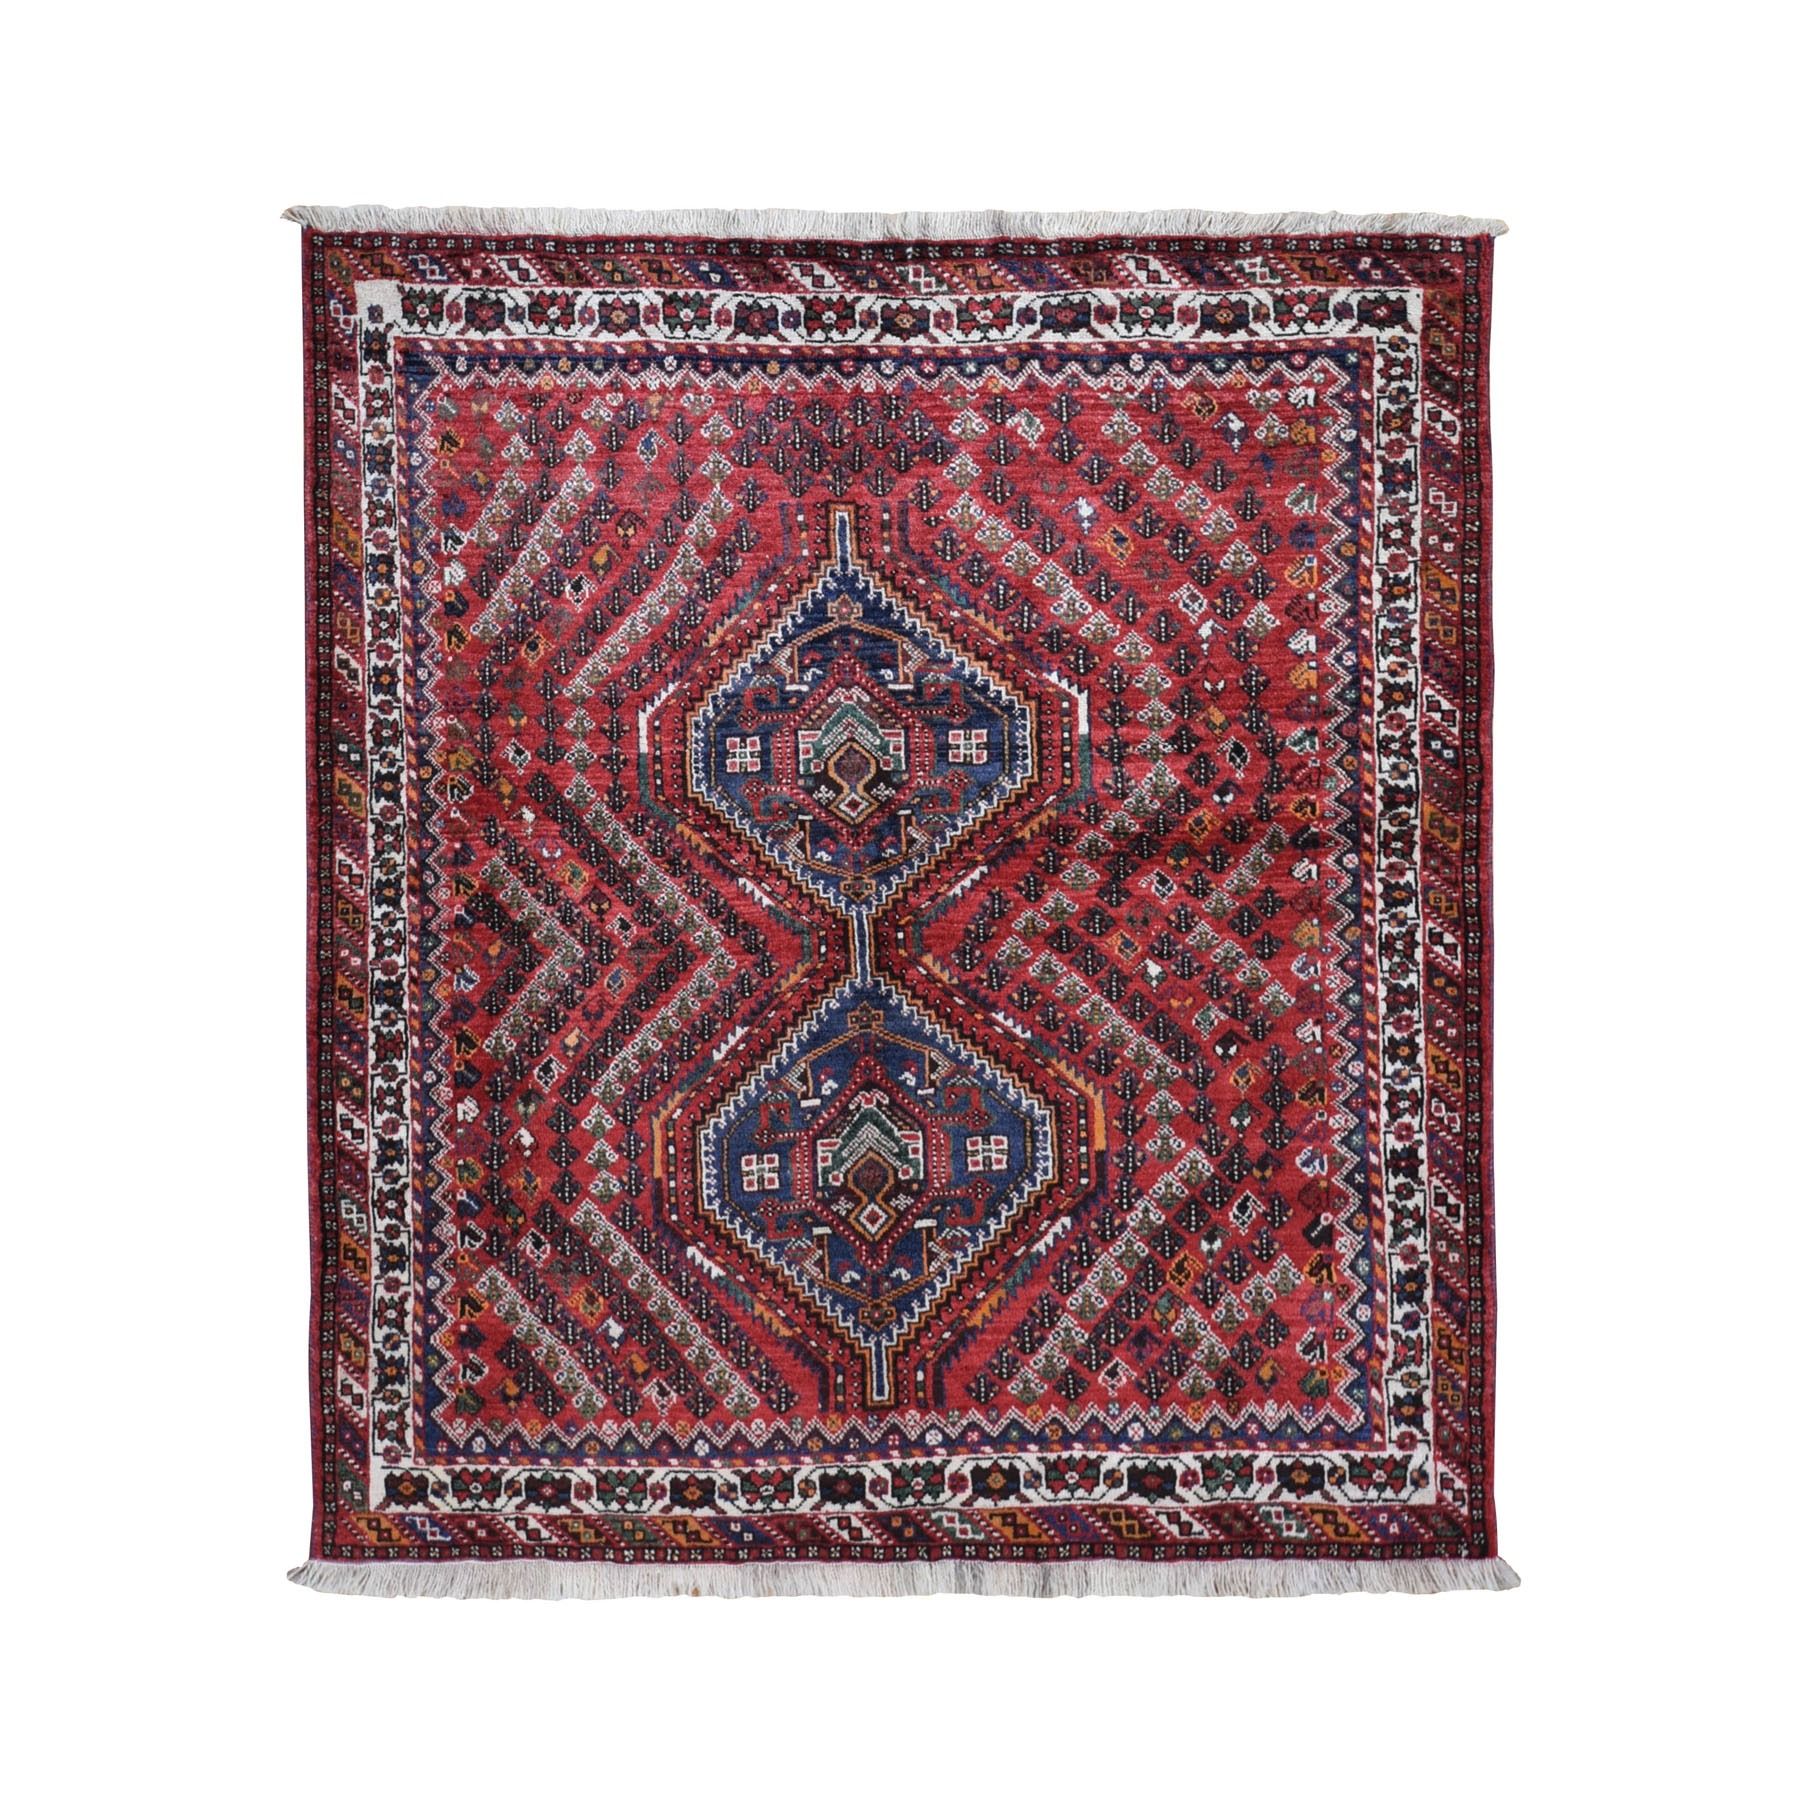 "5'7""x6'2"" Red Squarish New Persian Shiraz Pure Wool Hand Woven Oriental Rug"